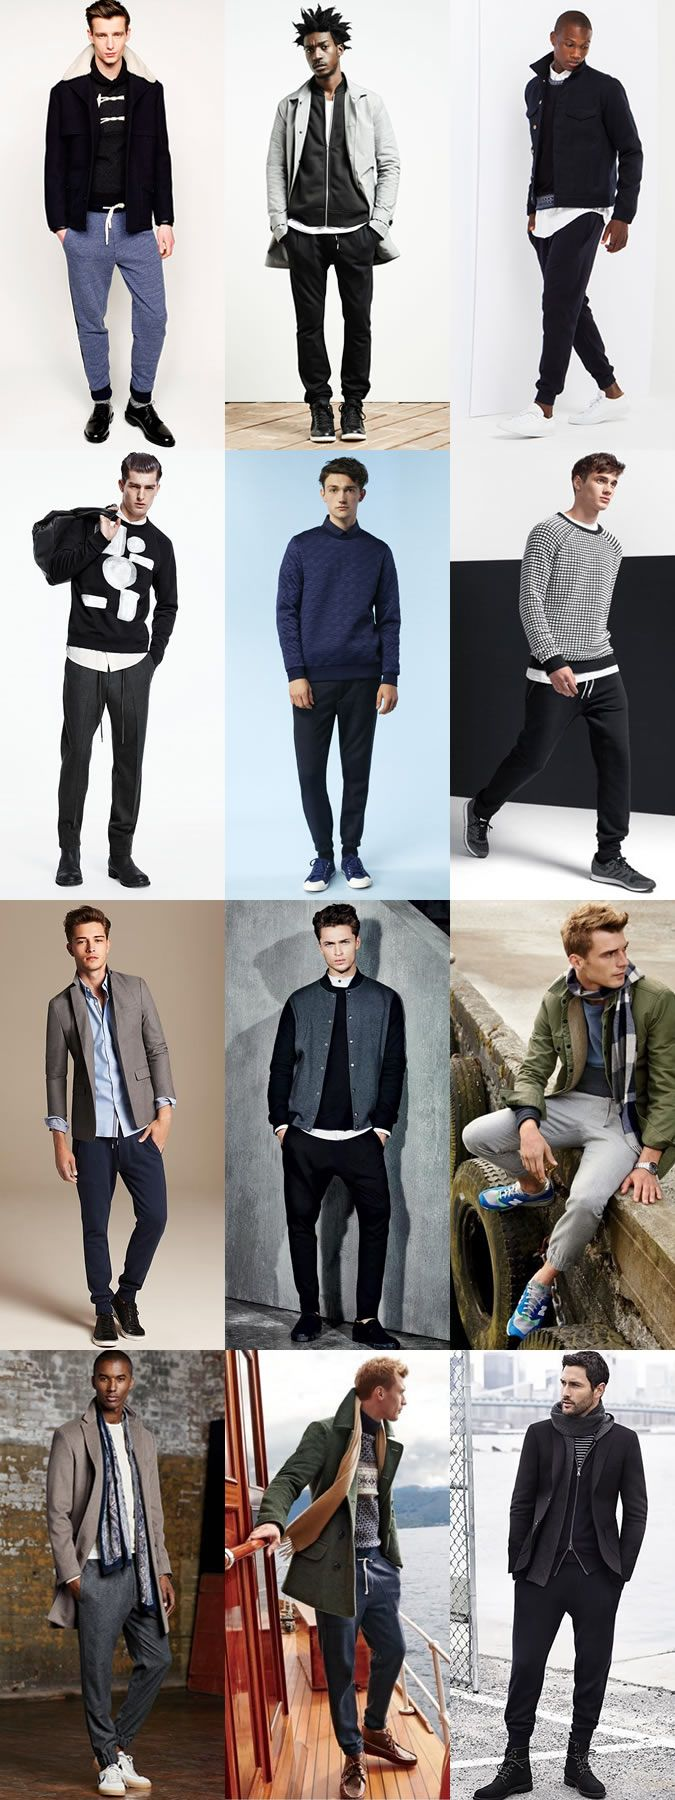 Men's Slim-Cut Jogging Bottoms - Transitional Outfit Inspiration Lookbook